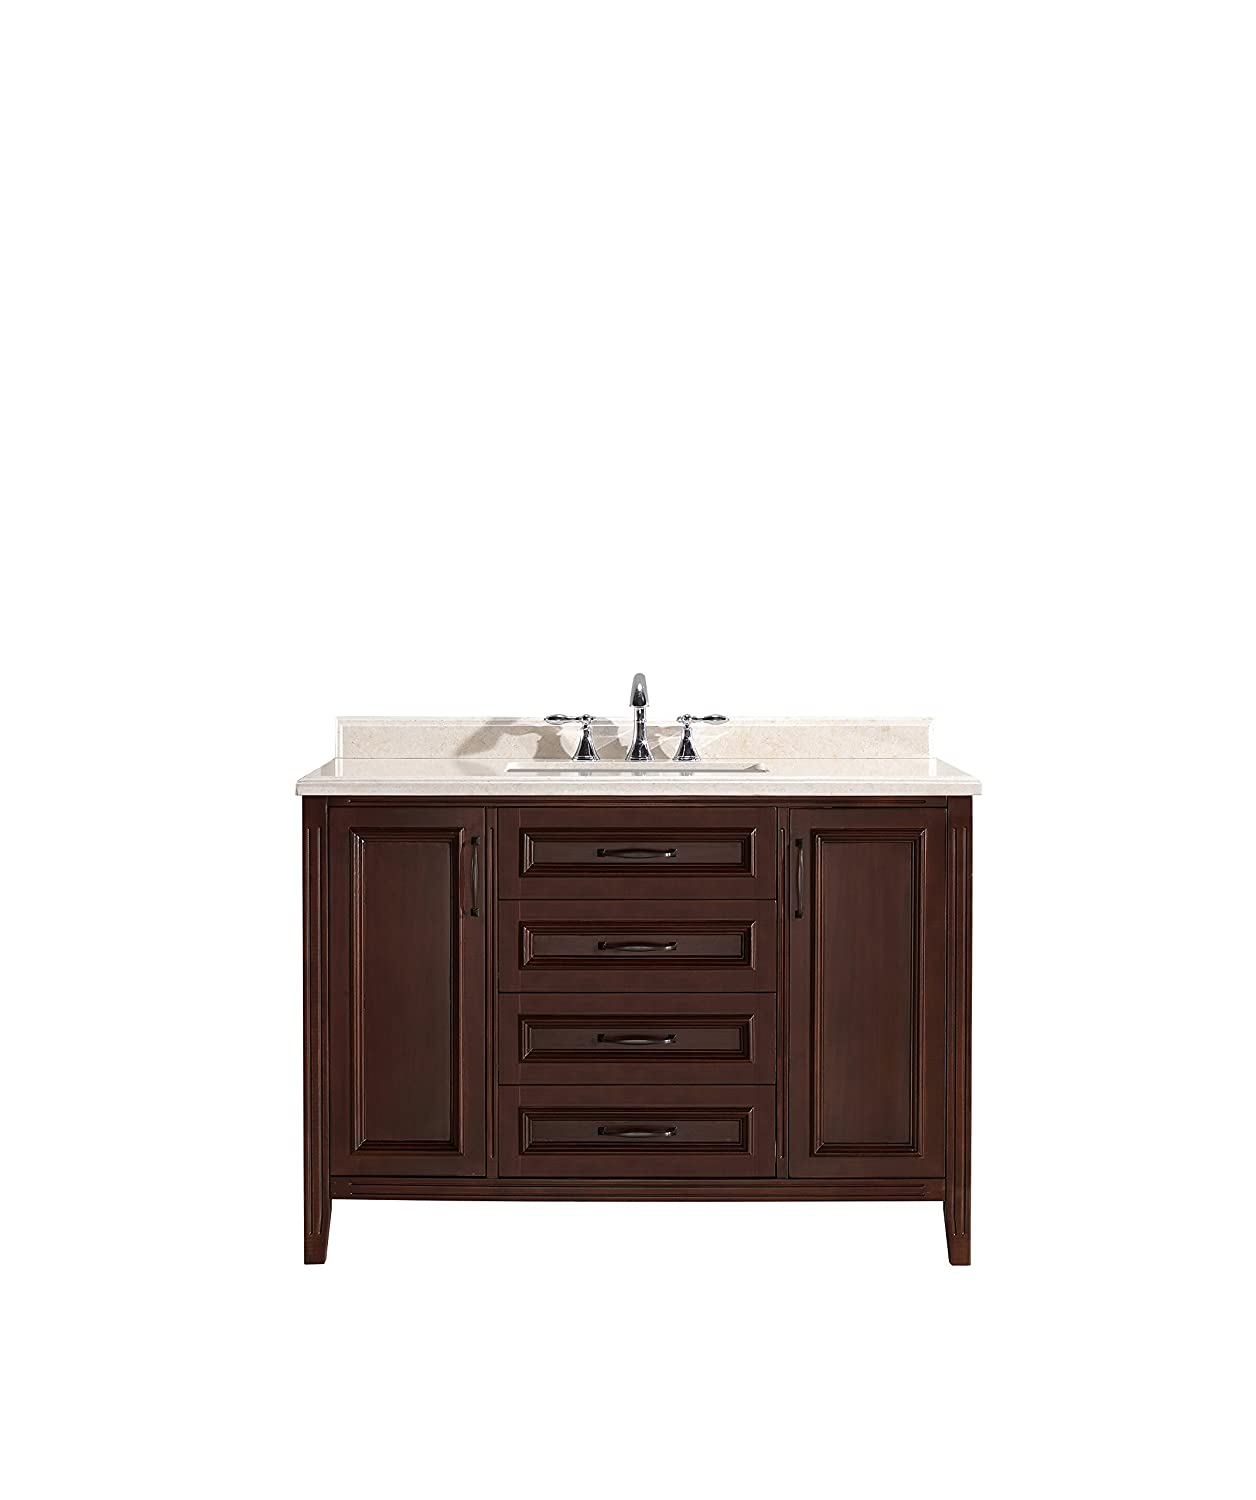 Ove Decors Daniel 48 Cocoa Bathroom Vanity In Cocoa With Beige Marble Vanity Top 48 Inch Wide Amazon In Home Improvement